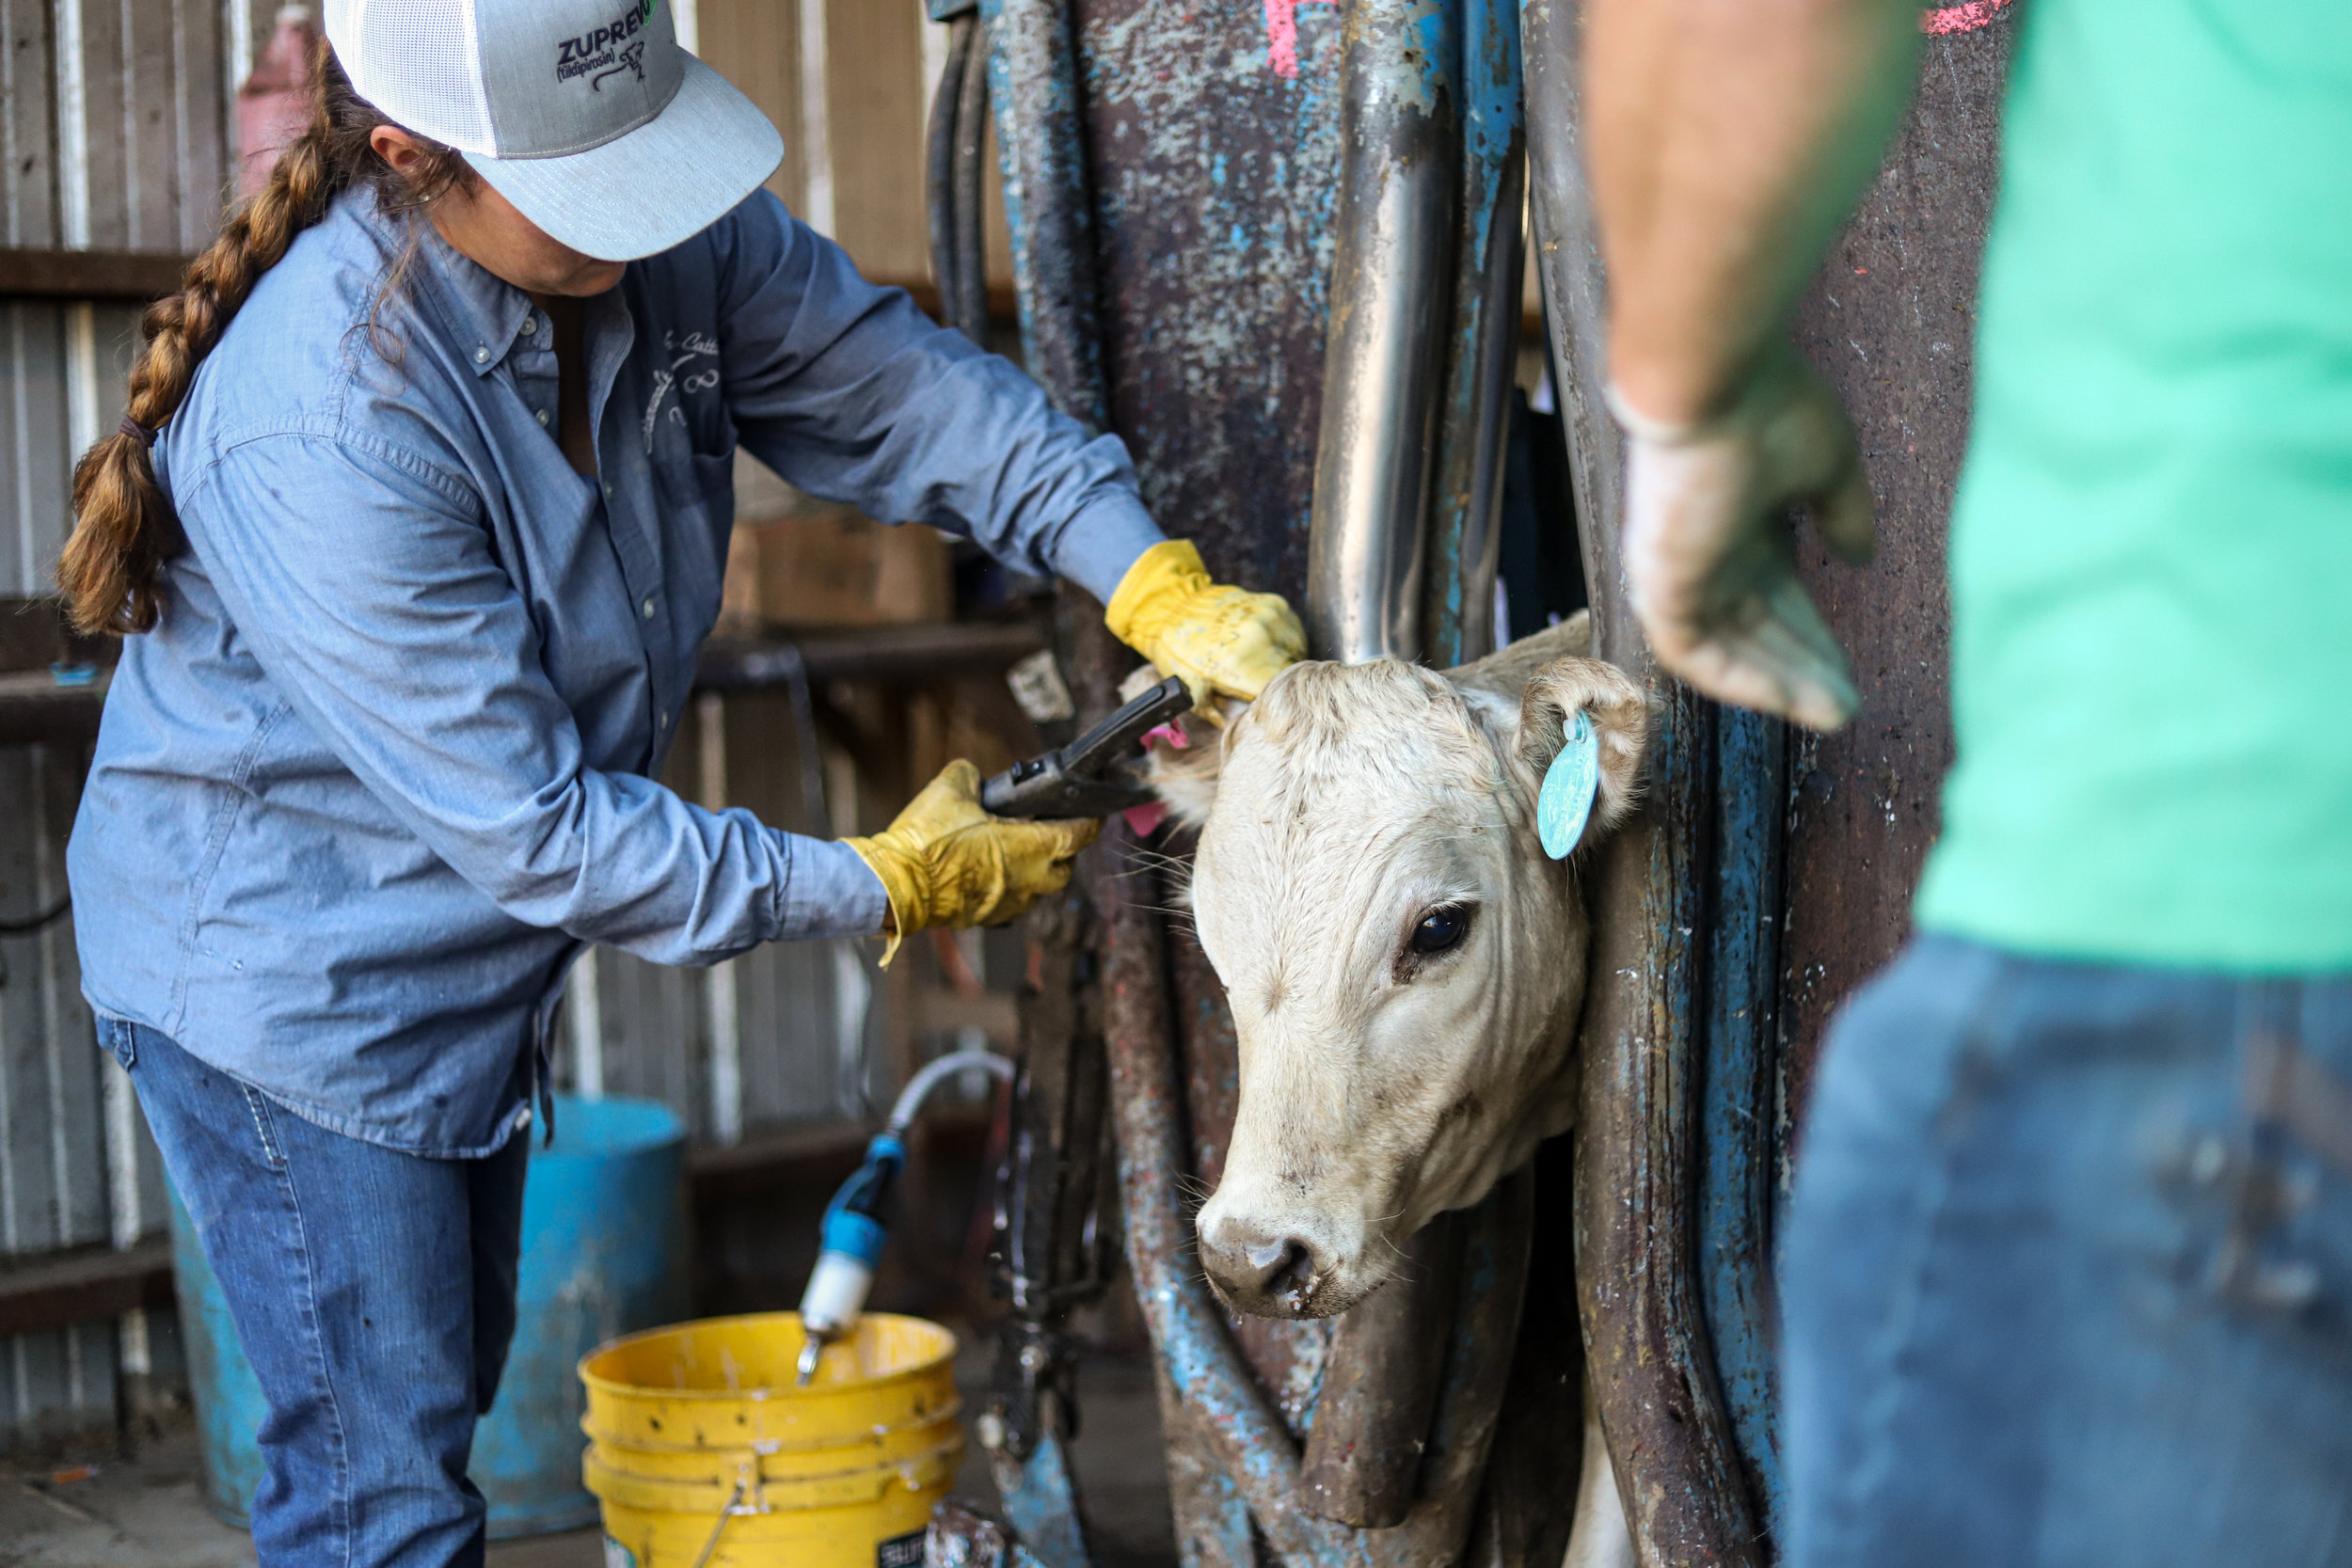 Jenna Stierwalt and Gene Renfrow tag a cow while processing a new shipment of cattle at Stierwalt Ranch in Burbank, Oklahoma.